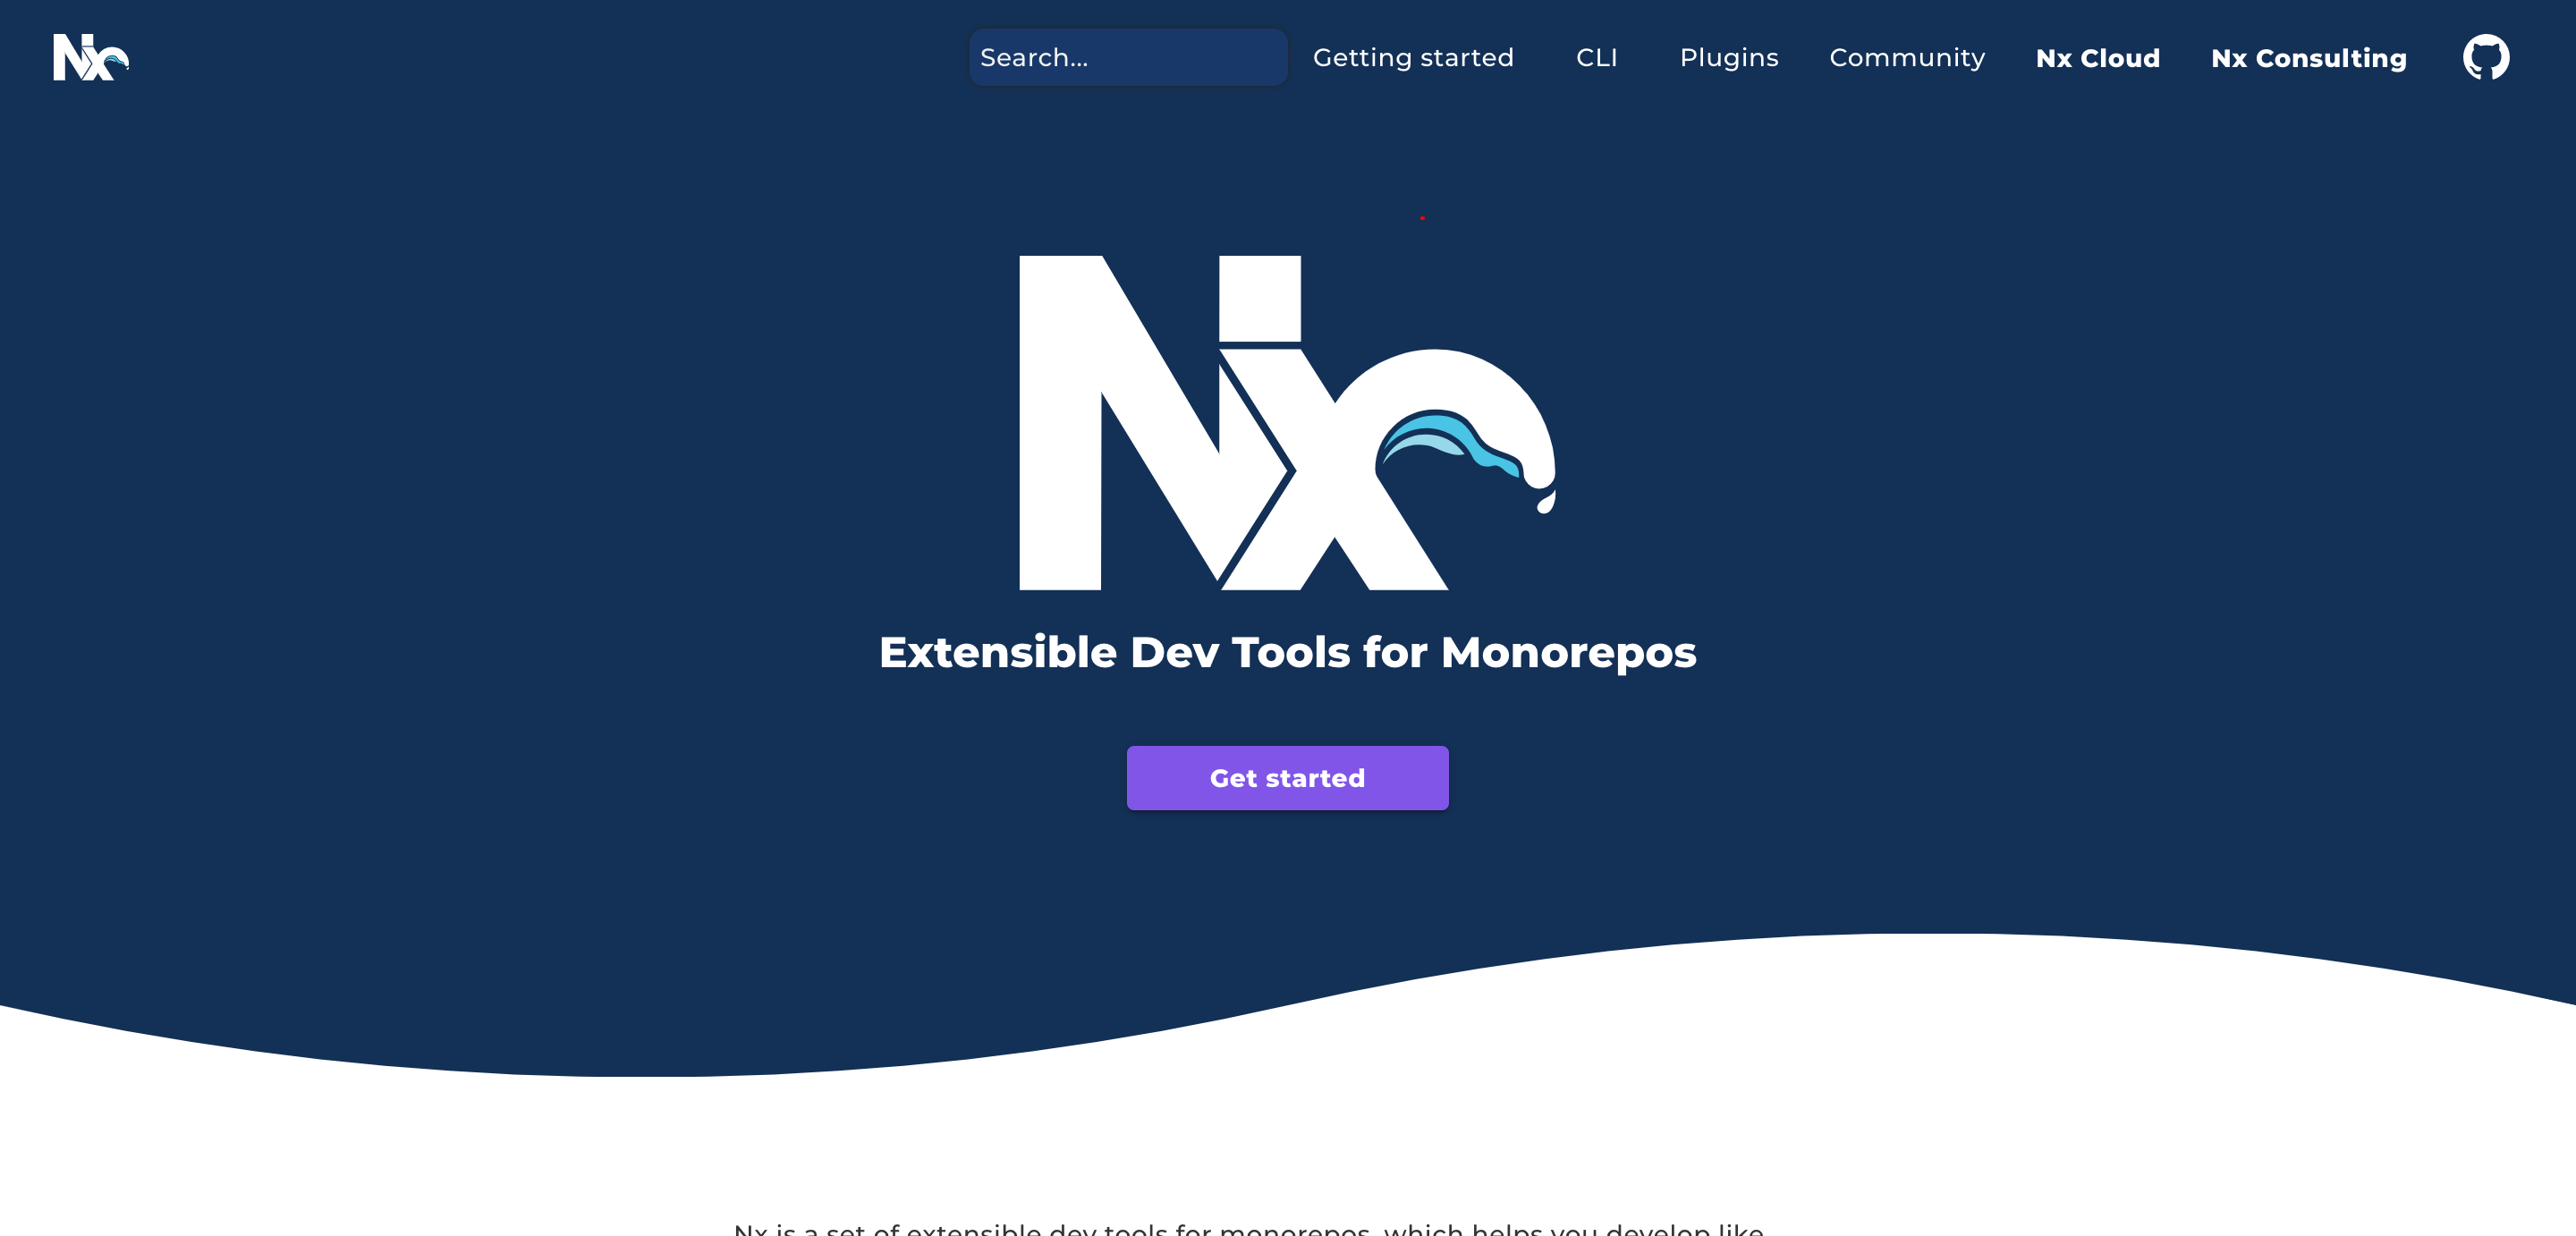 Nx-Extensible-Dev-Tools-for-Monorepos.png